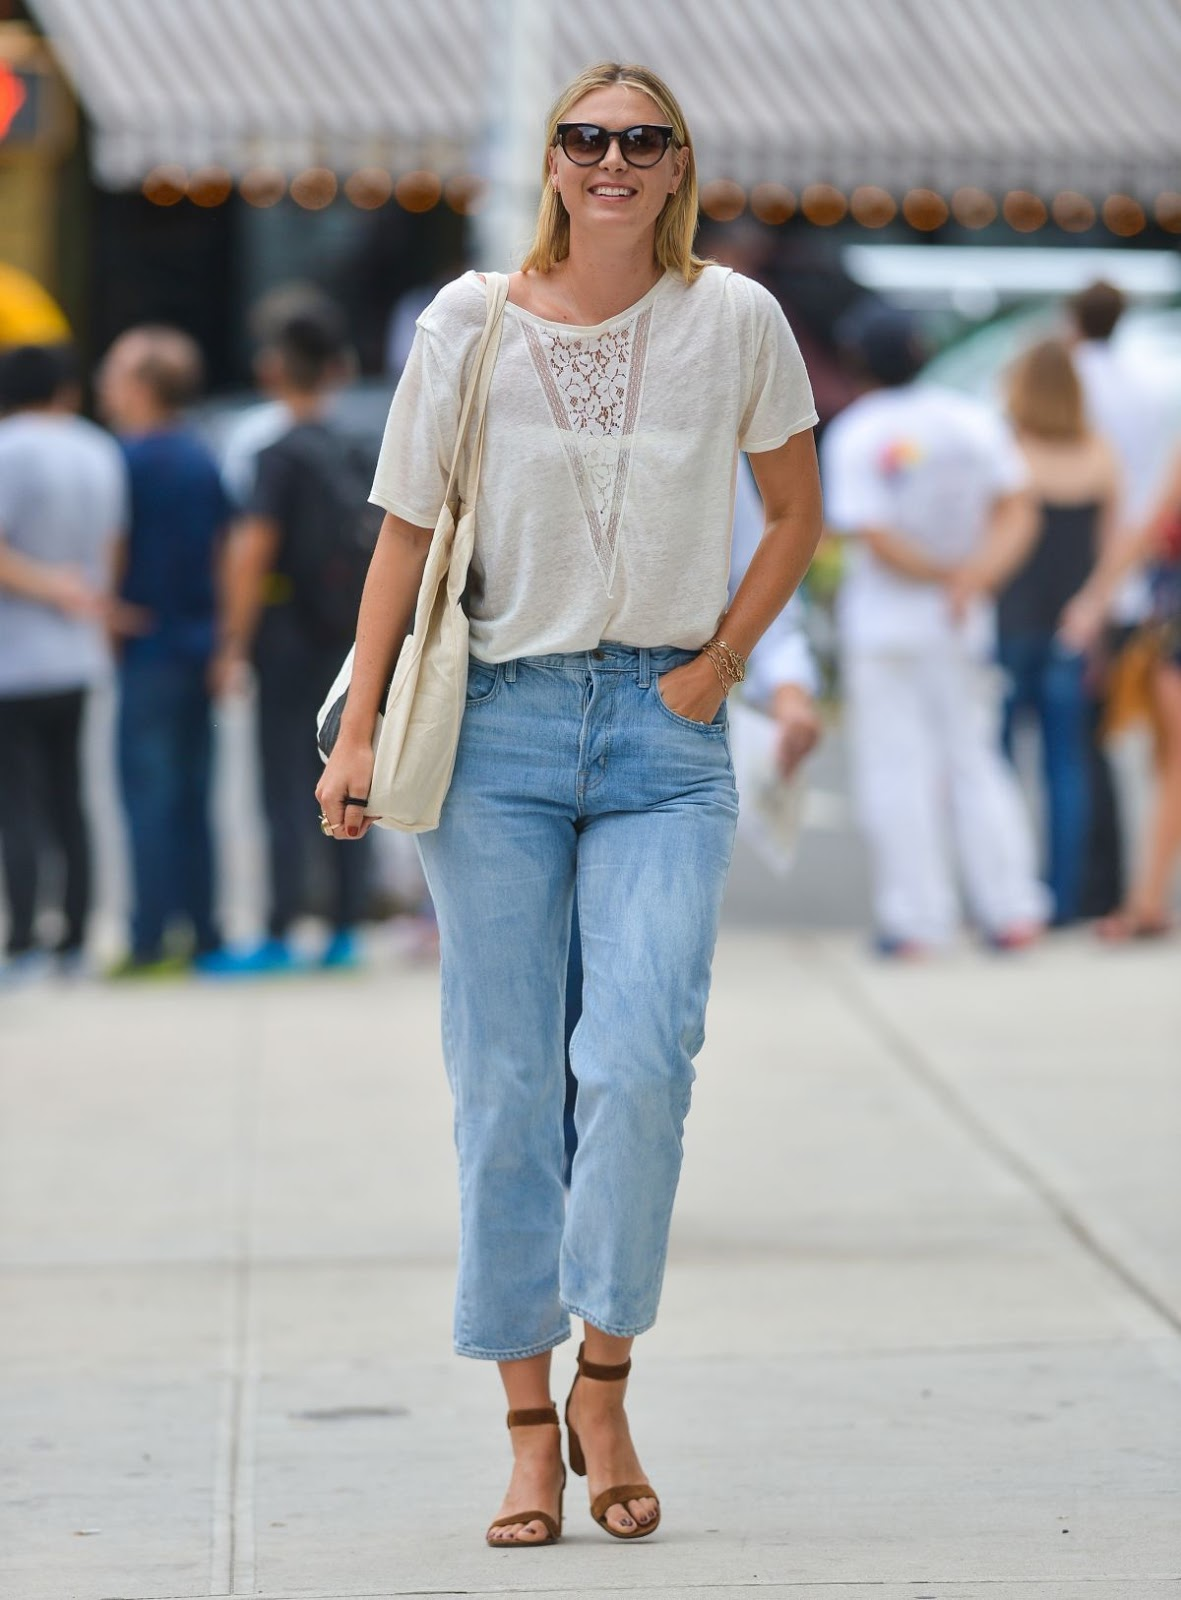 Maria Sharapova in Casual Dress Out And About In New York